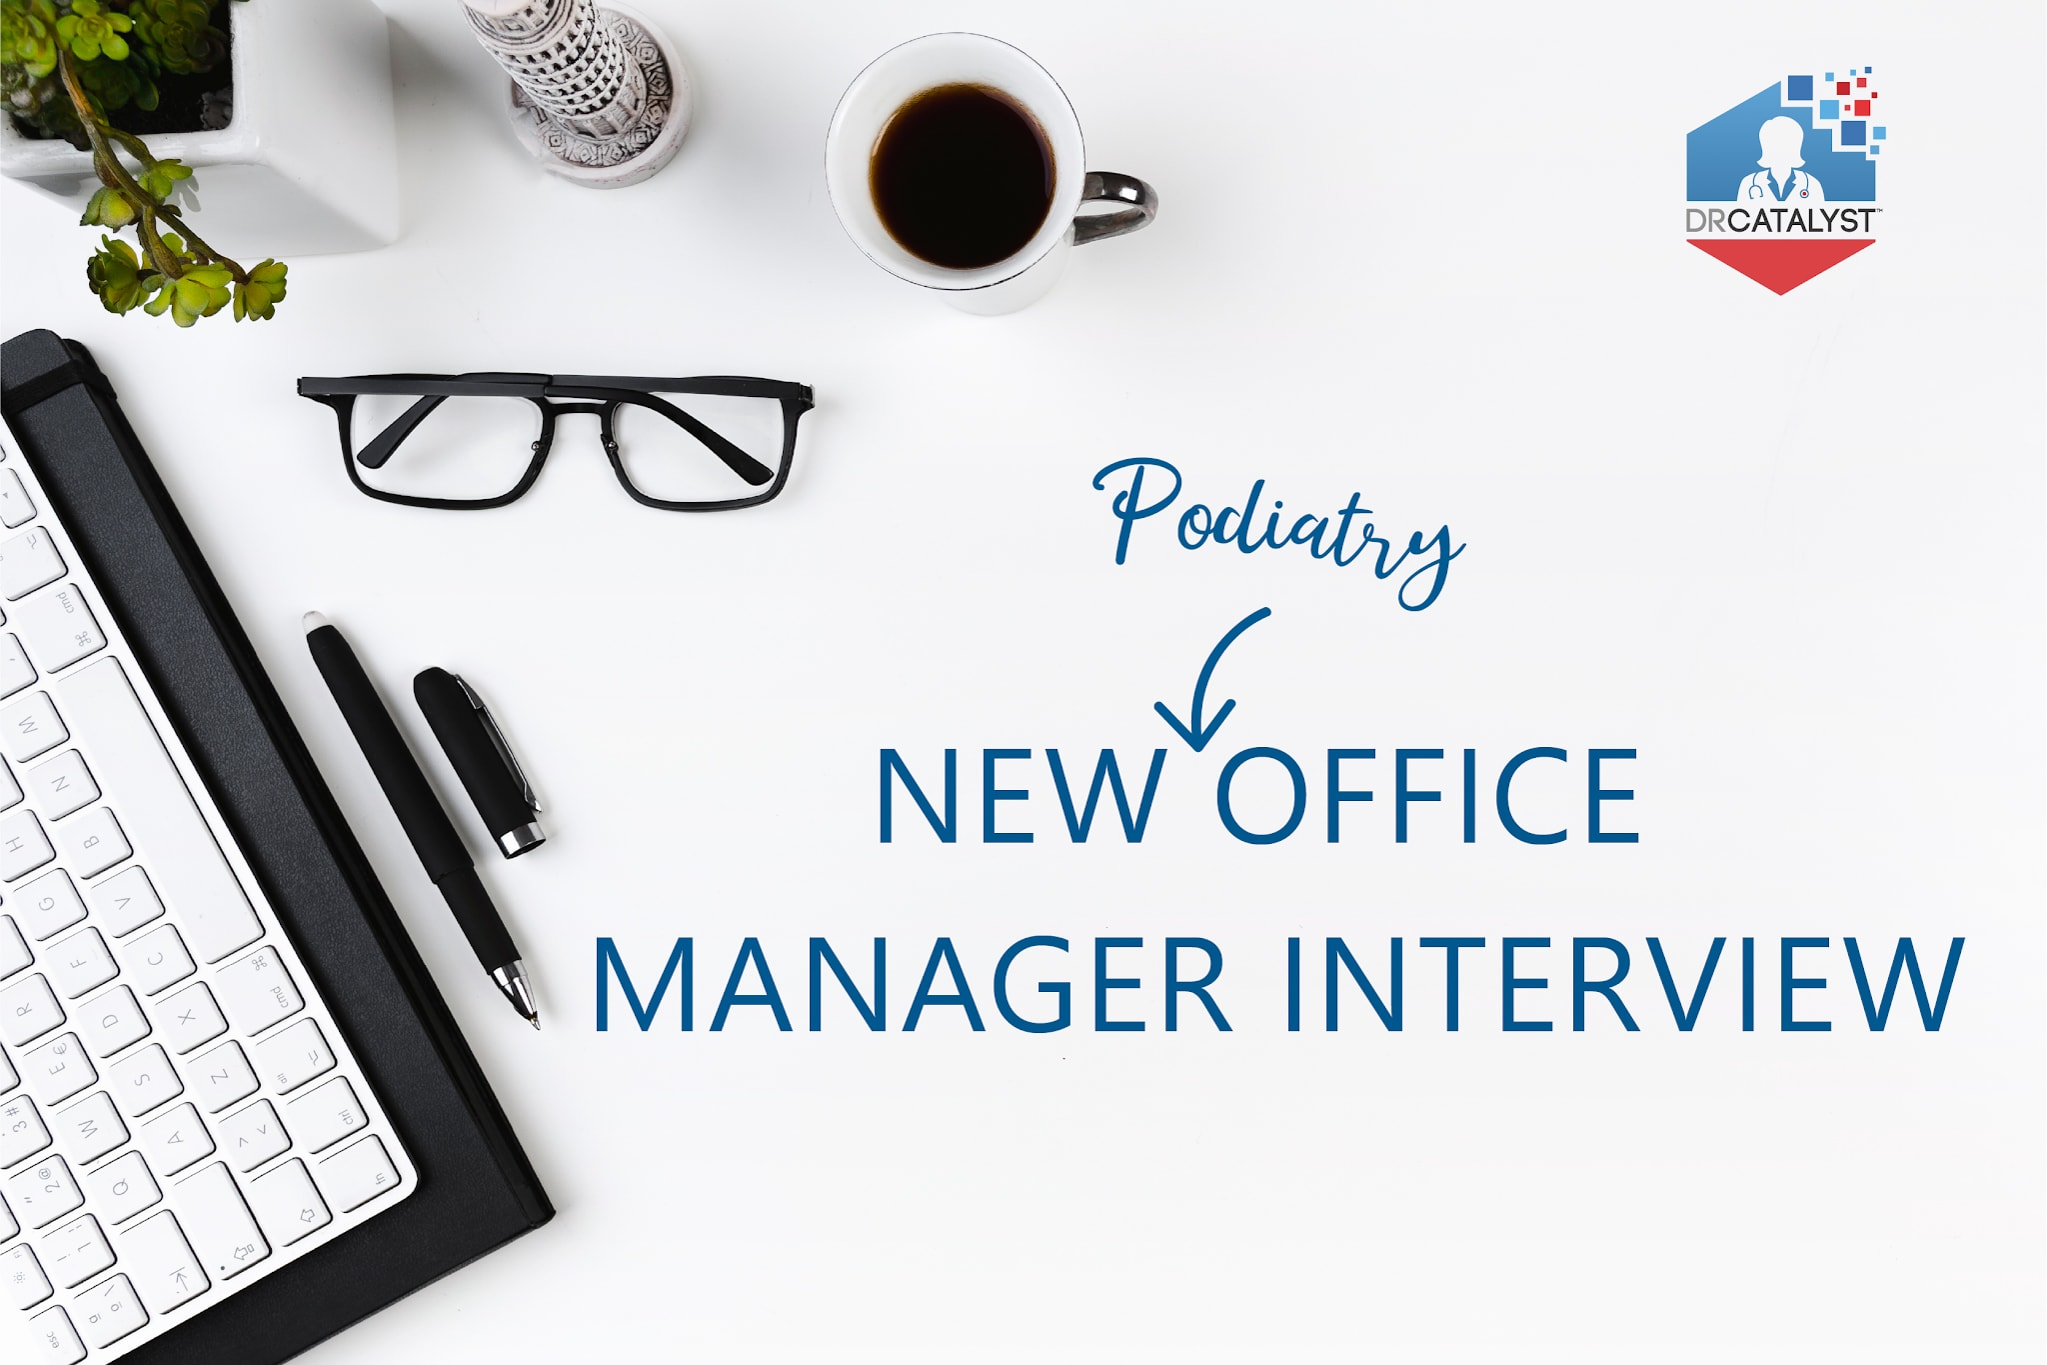 new office manager interview podiatry